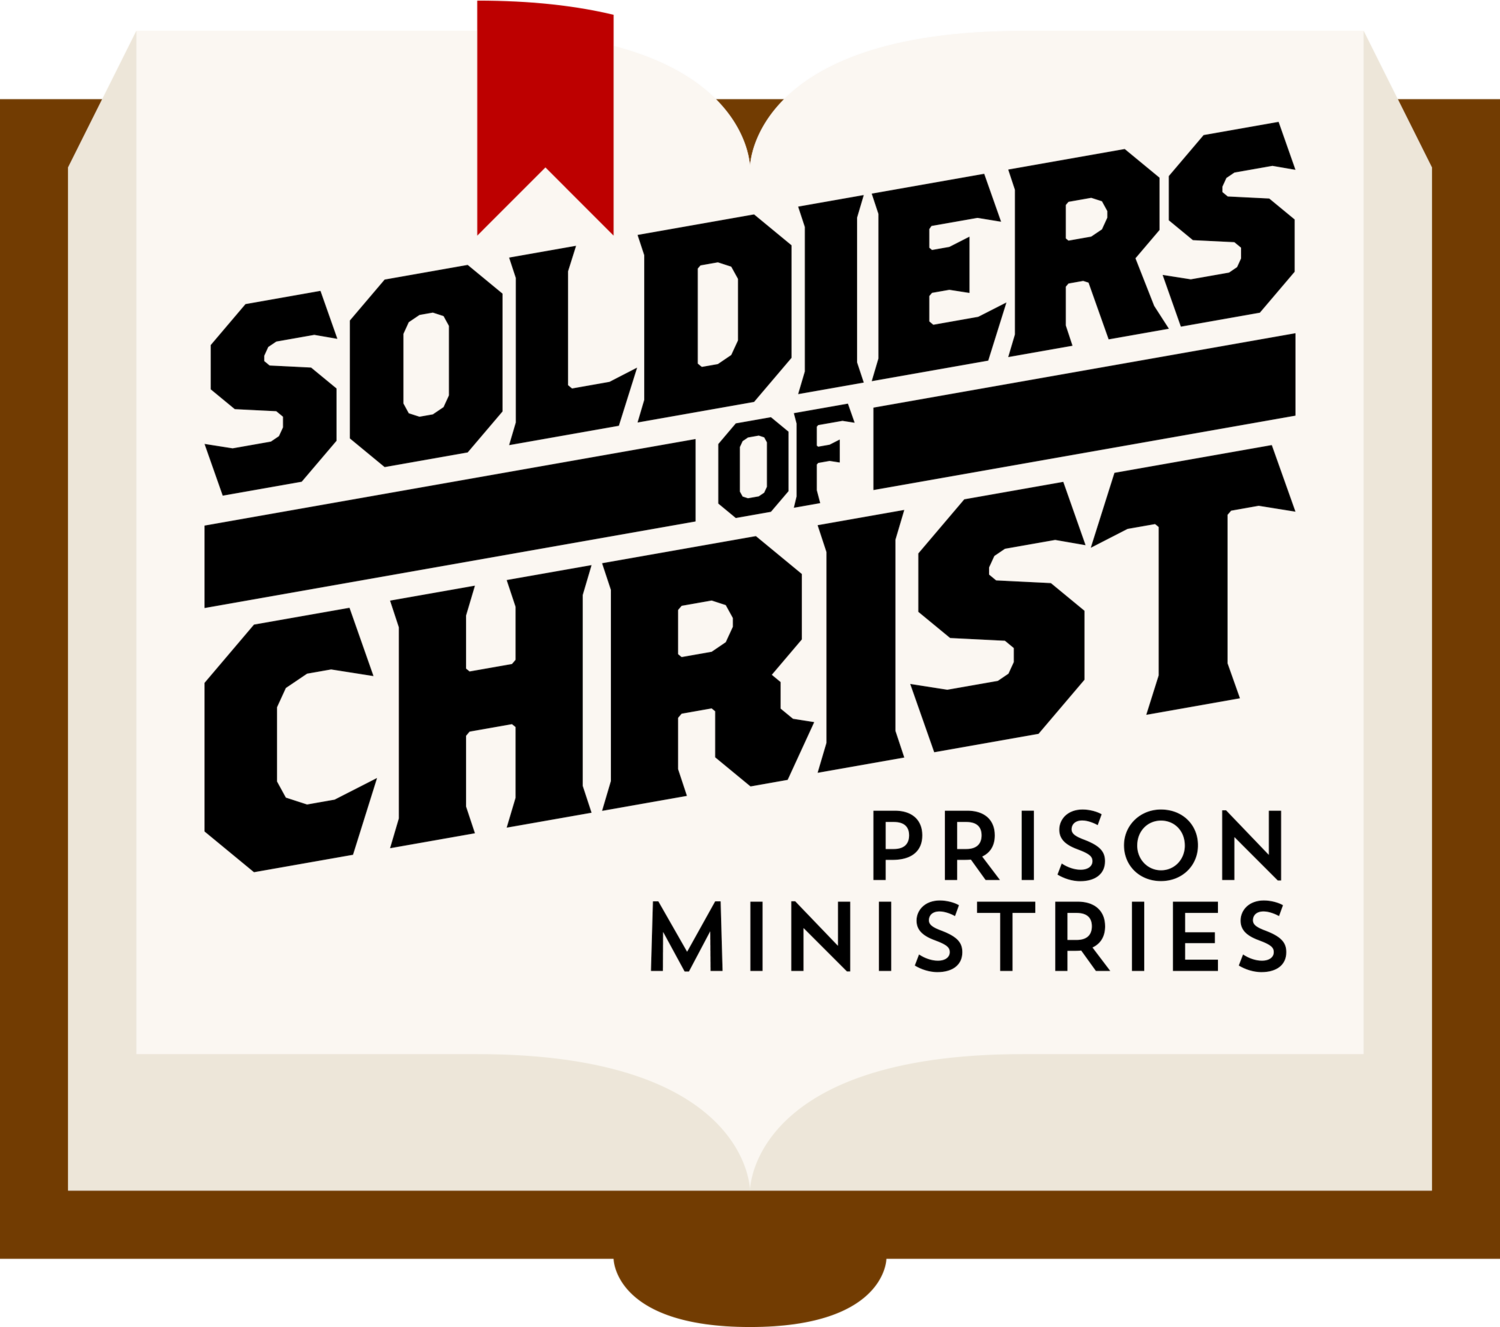 Soldiers of Christ Prison Ministries